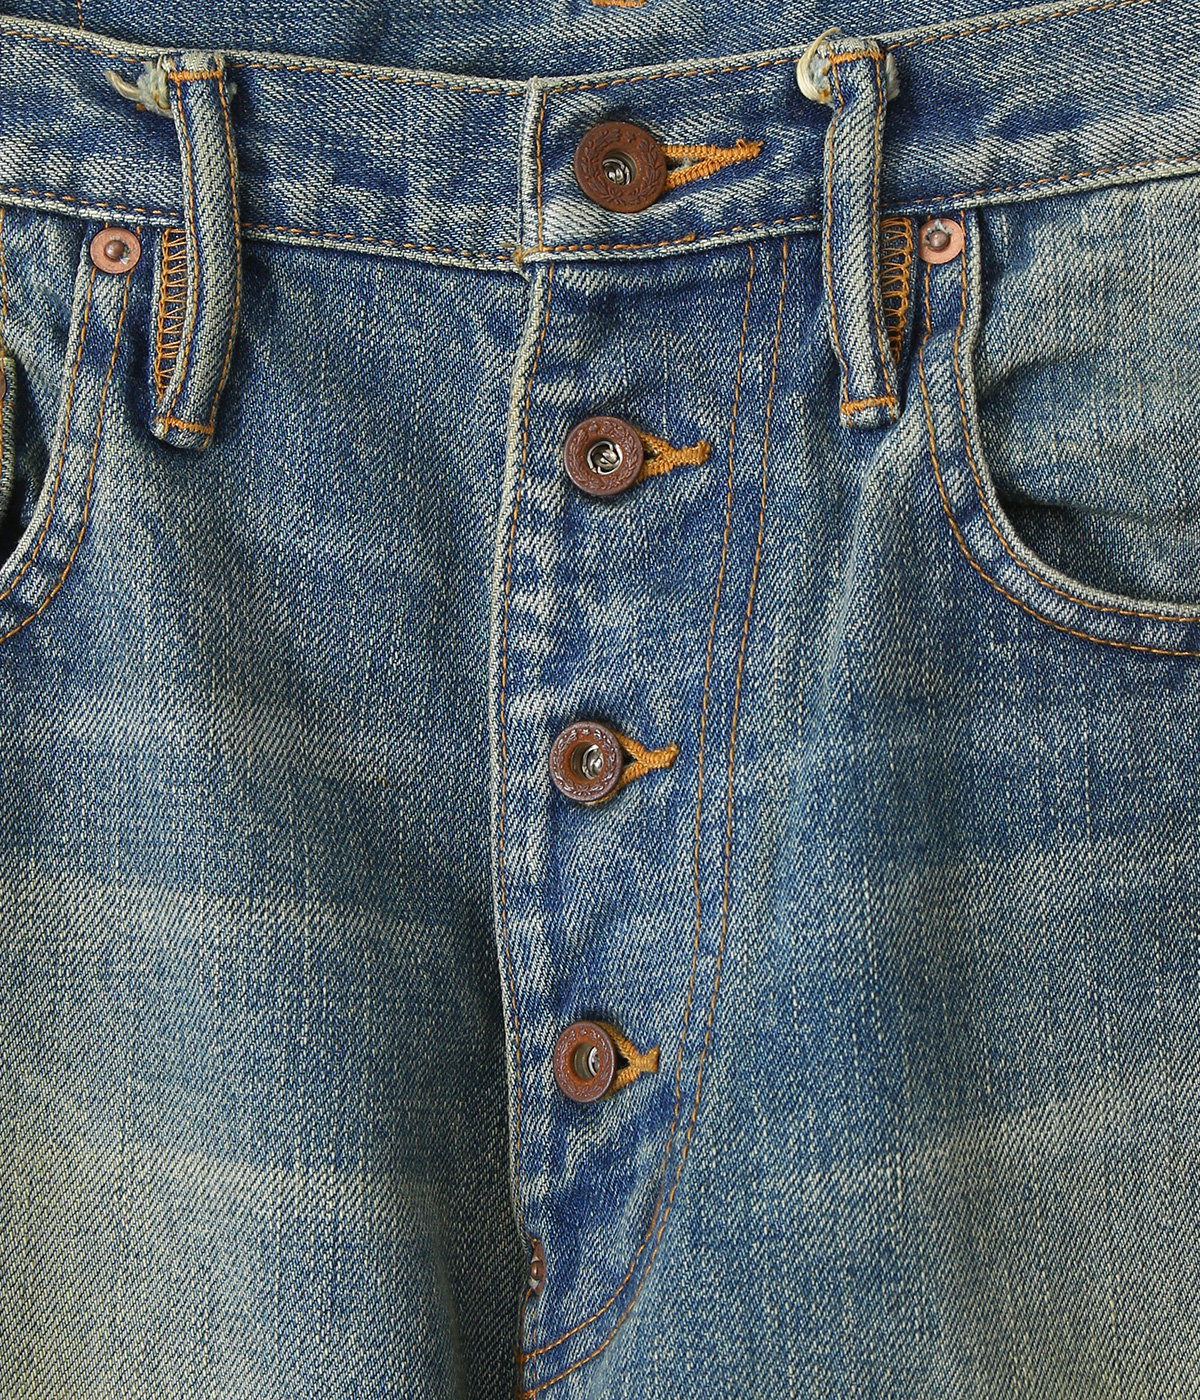 【予約】OILED FADE DENIM PANTS